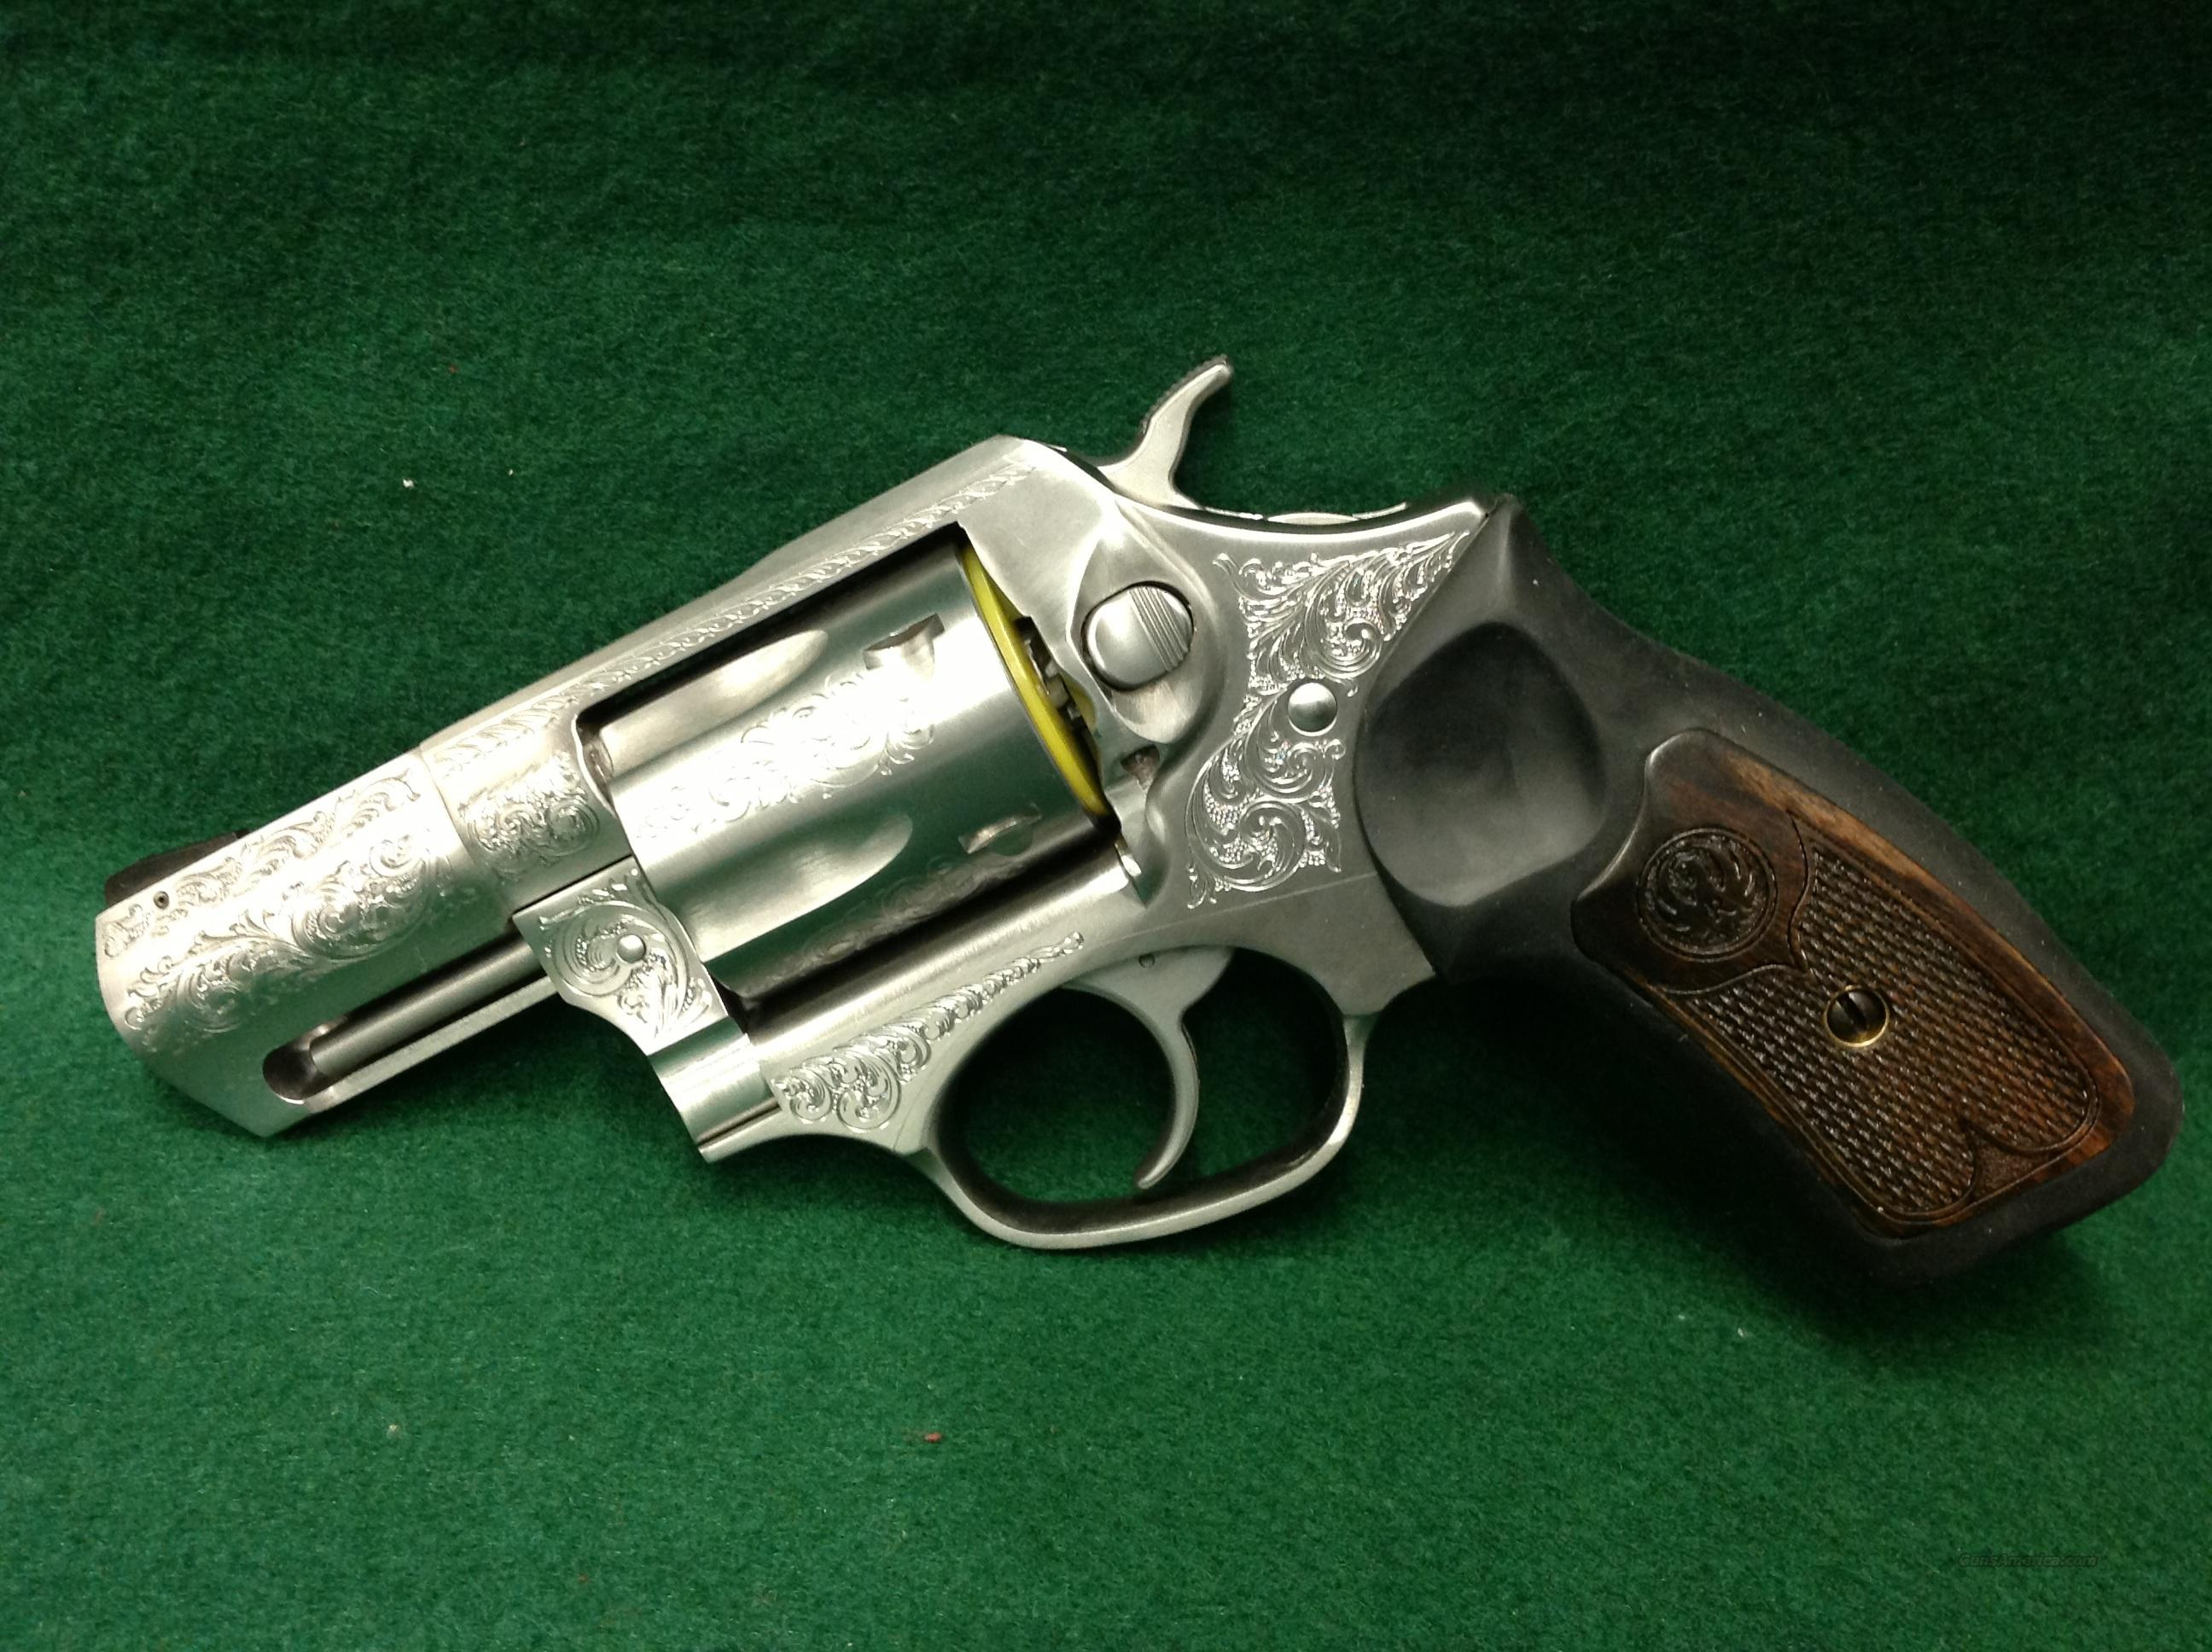 Ruger SP101 .357 Magnum ENGRAVED  Guns > Pistols > Ruger Double Action Revolver > SP101 Type